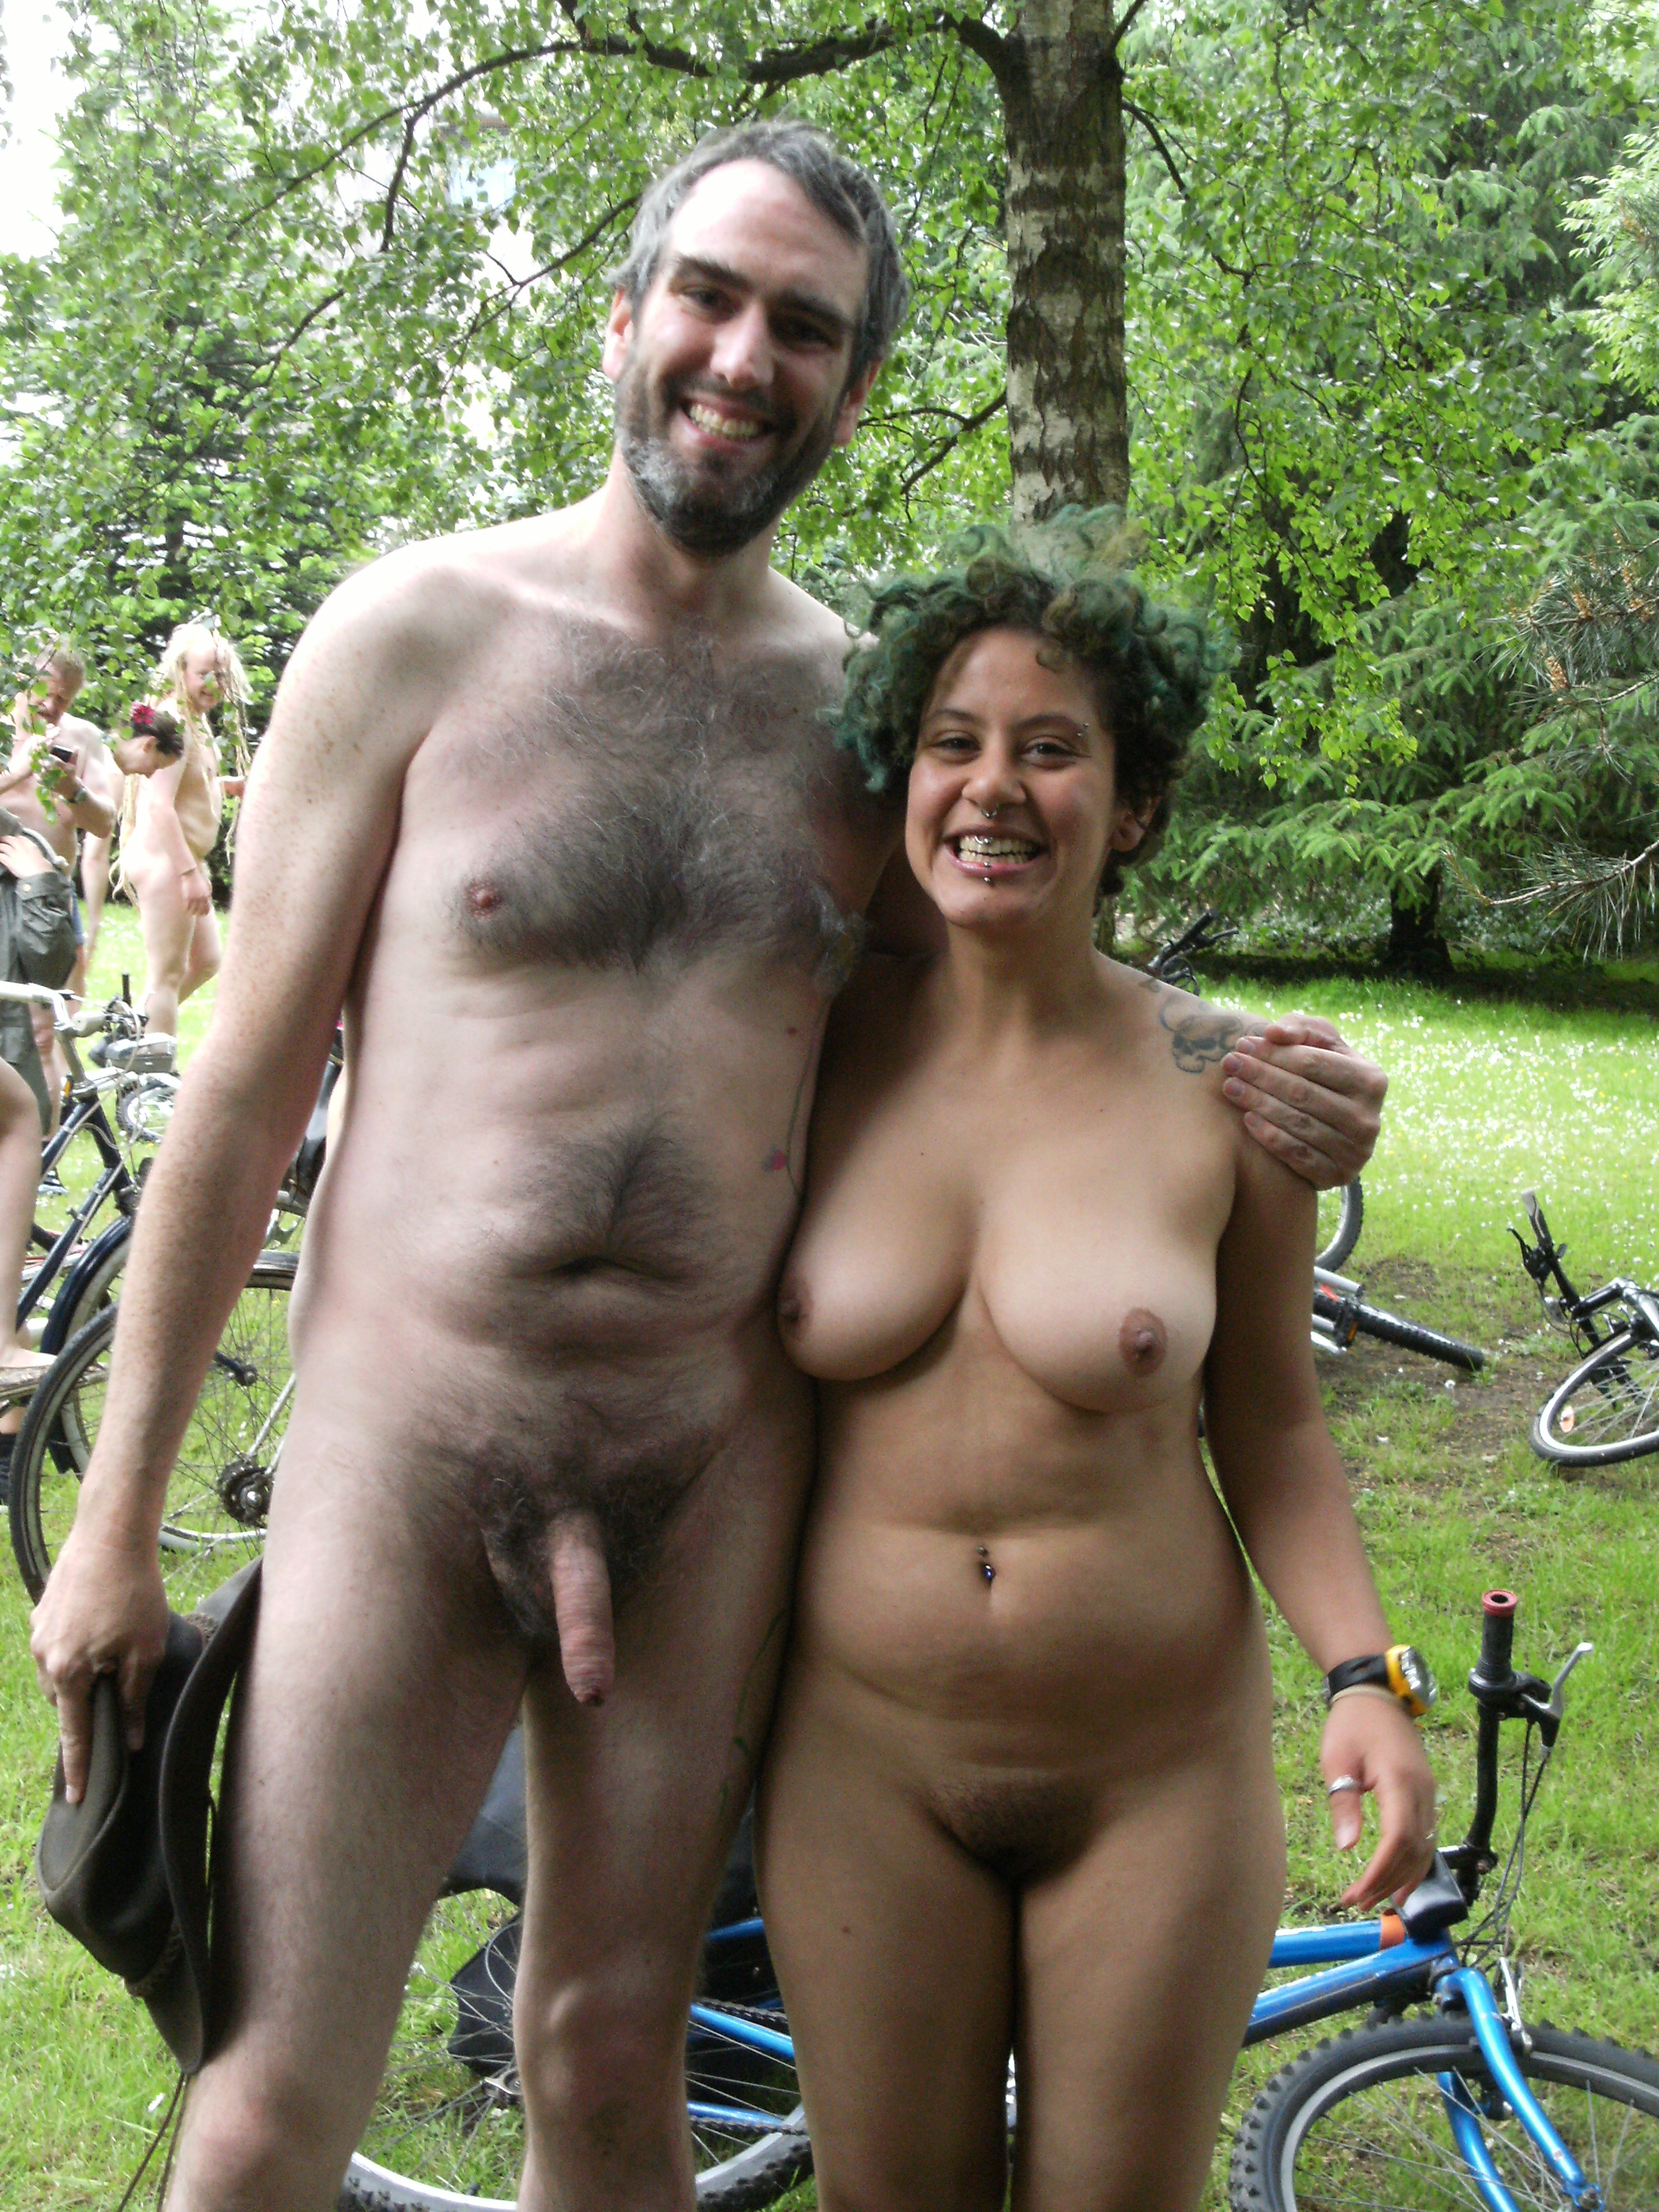 Old Nude Couples Pics